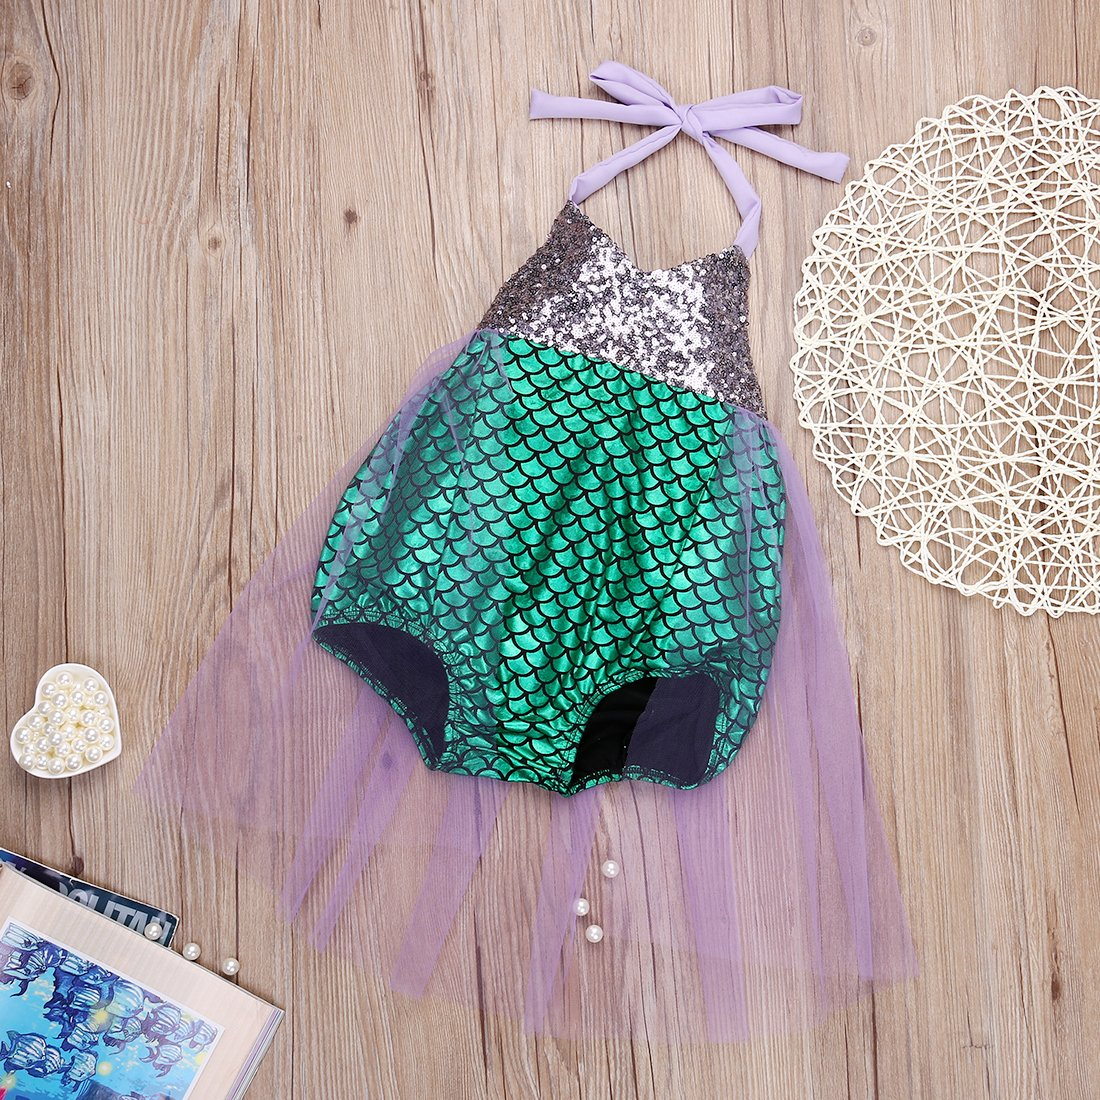 64580d9a32 Amazon.com: Baby Girls kids Mermaid Sequins Bikini Suit Swimsuit Costume  Beachwear: Clothing